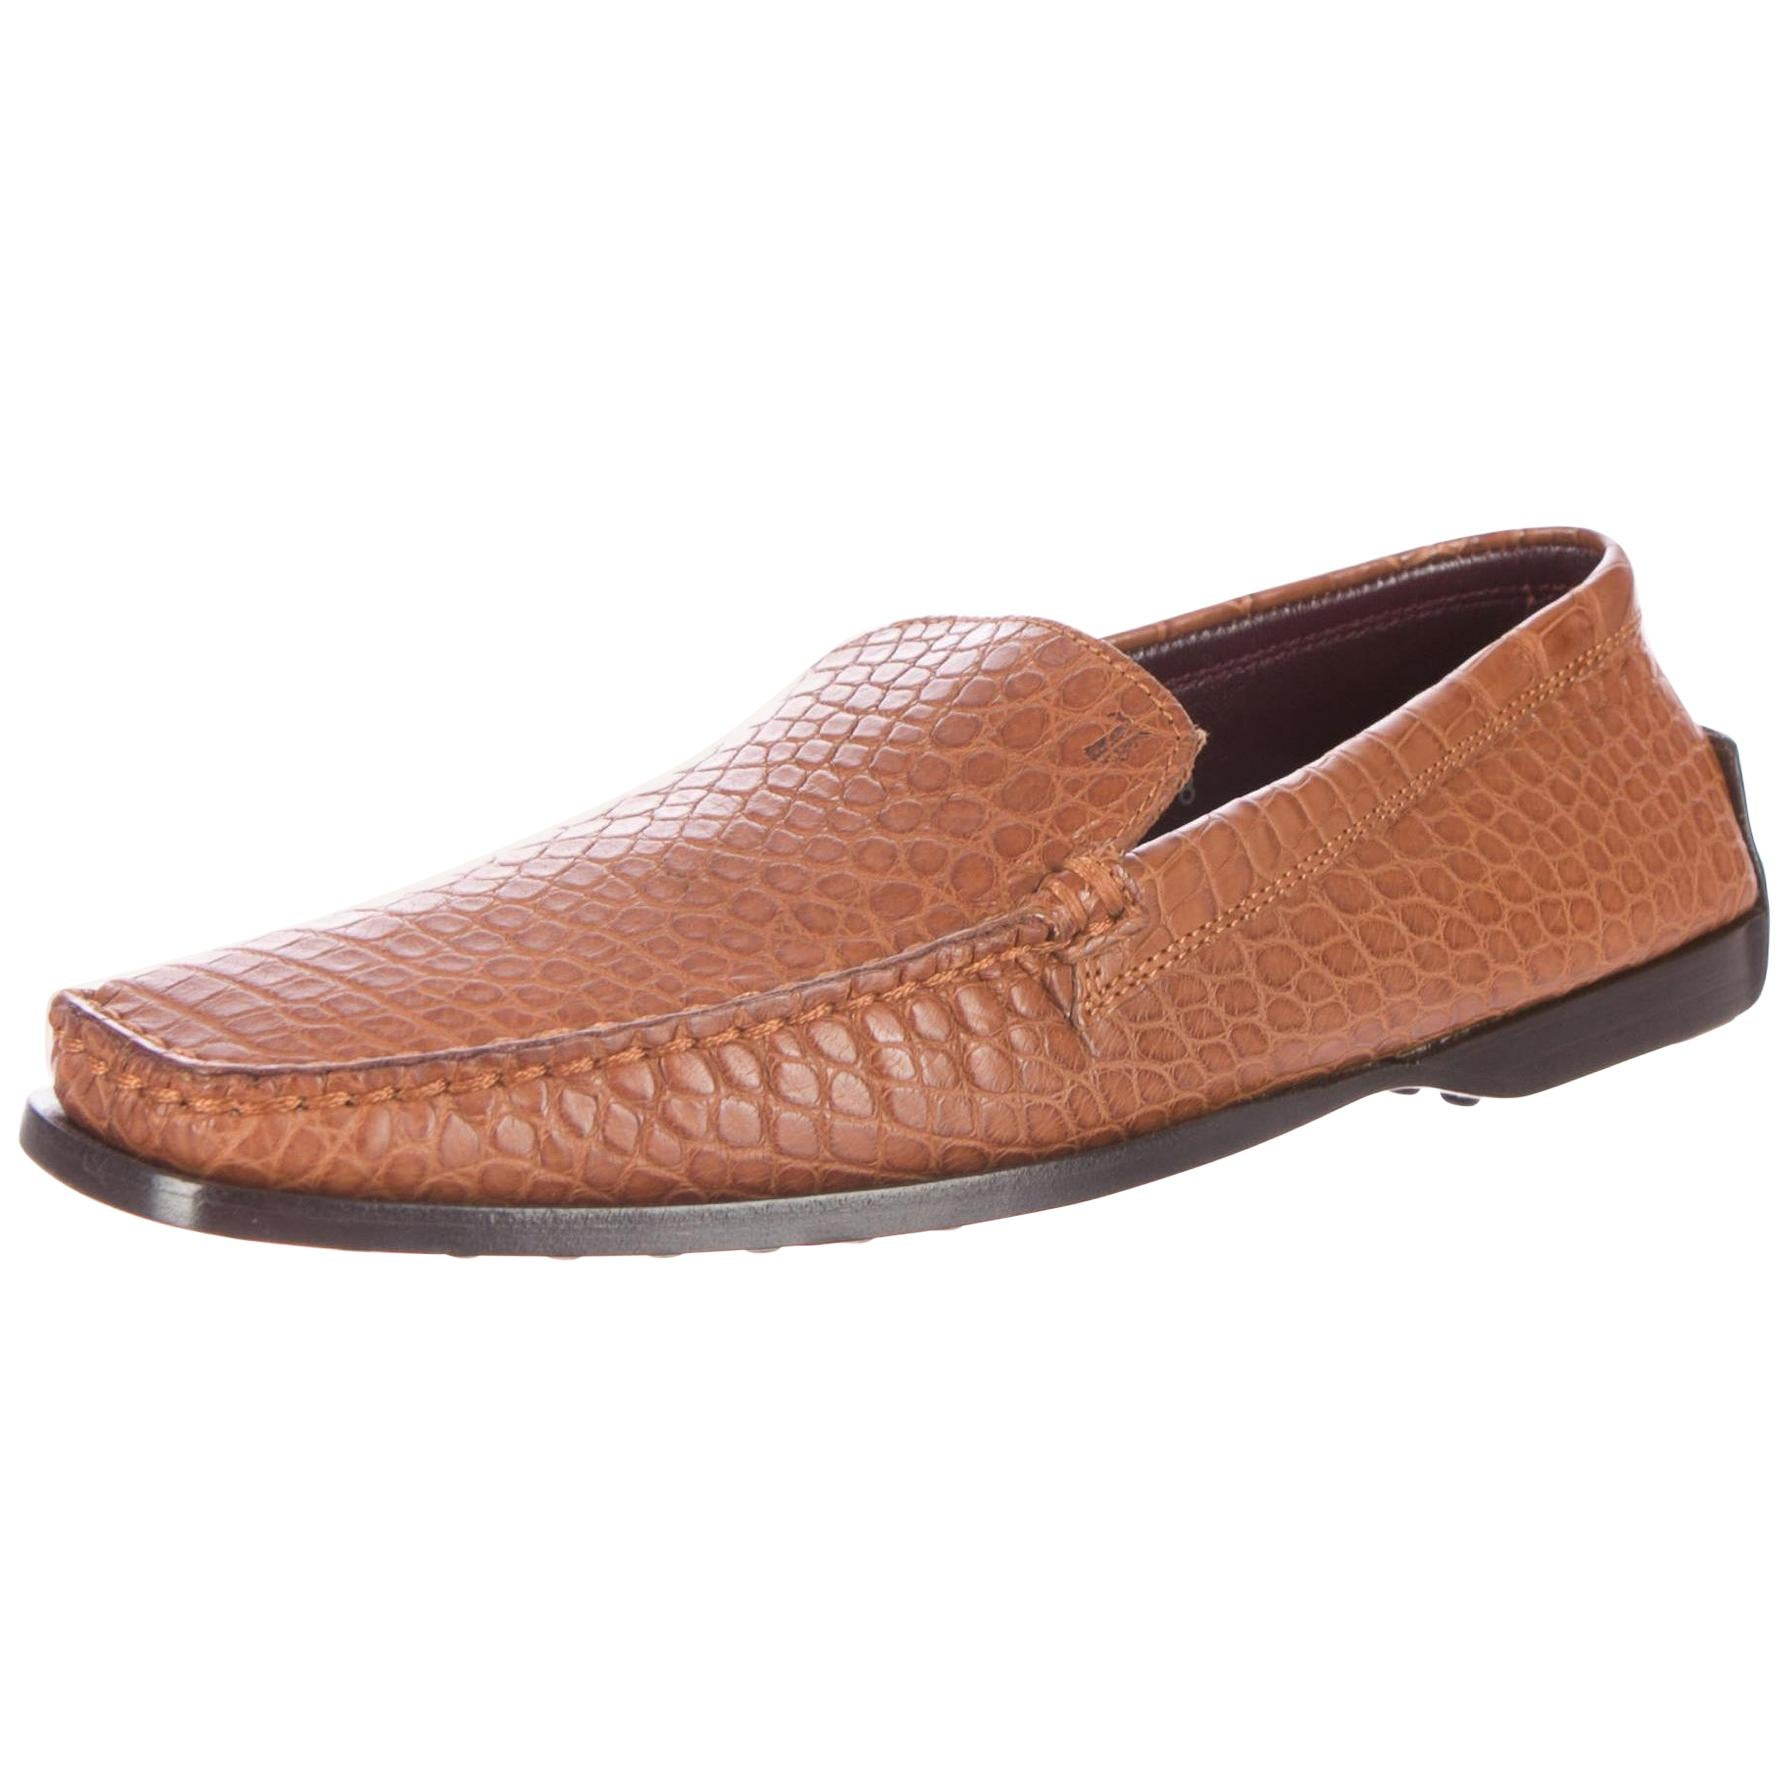 NEW Tod's Welted Moccasins Loafers Shoes Flats